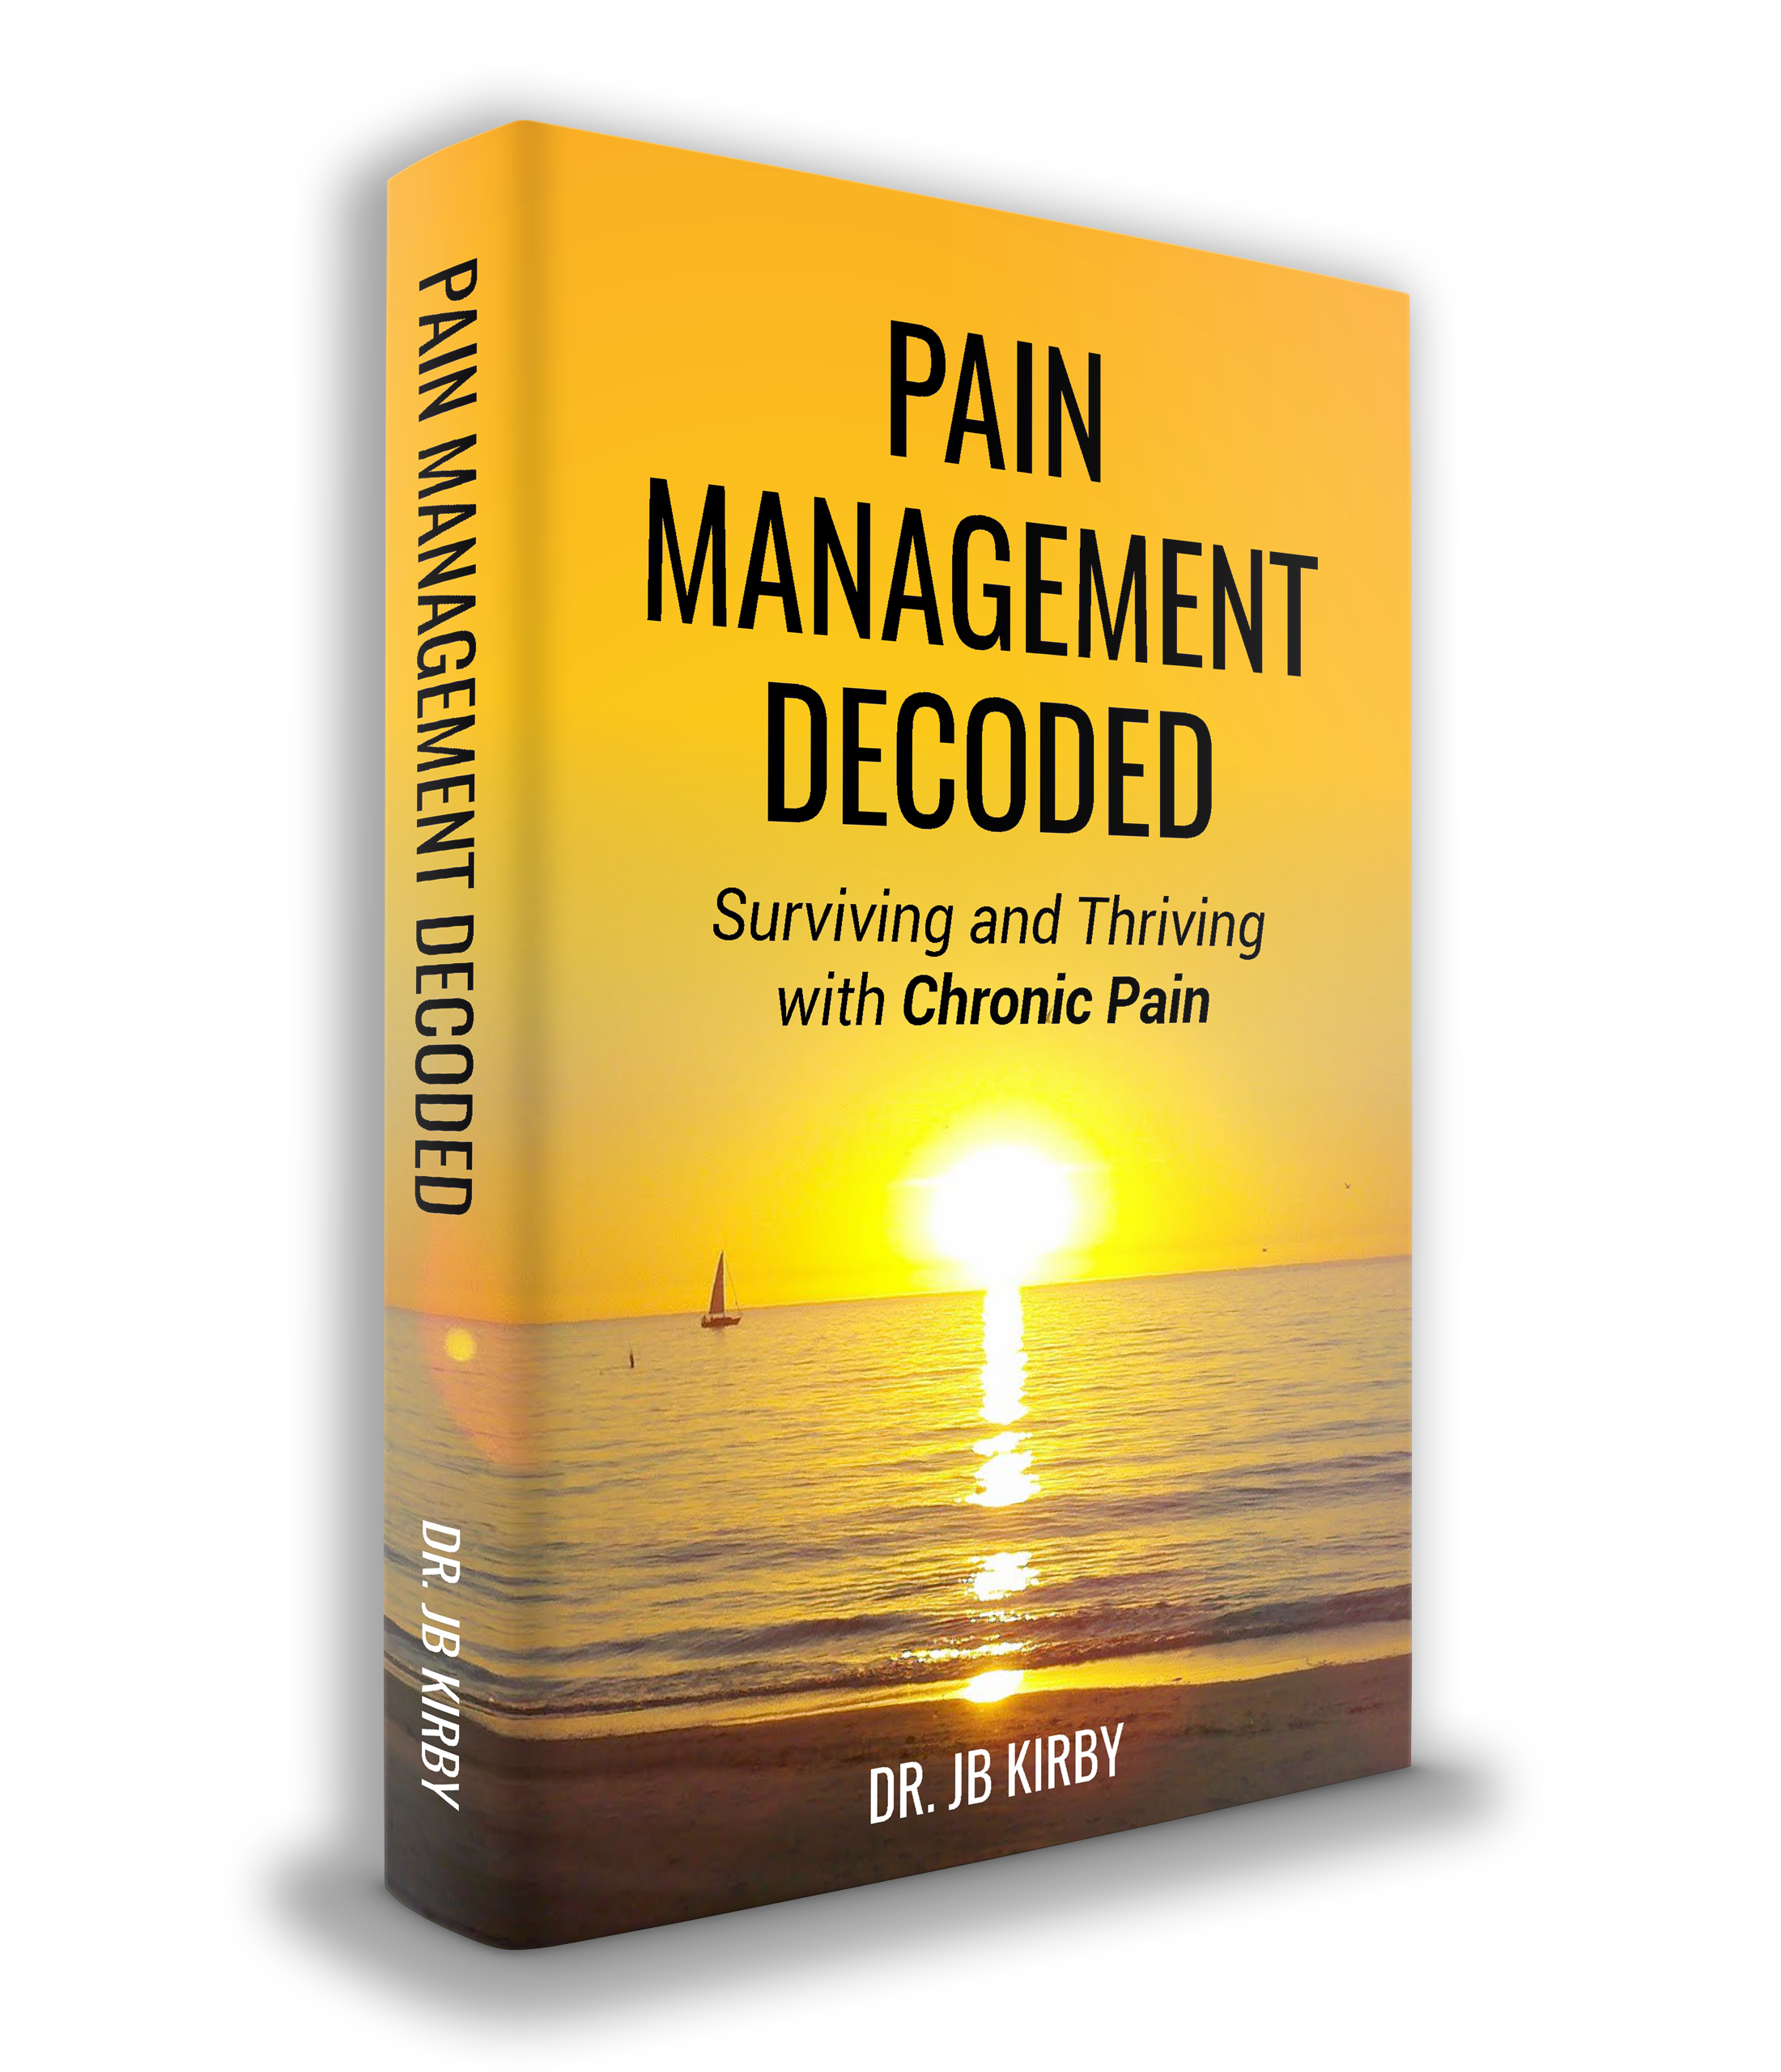 Pain Management Decoded by Dr JB Kirby